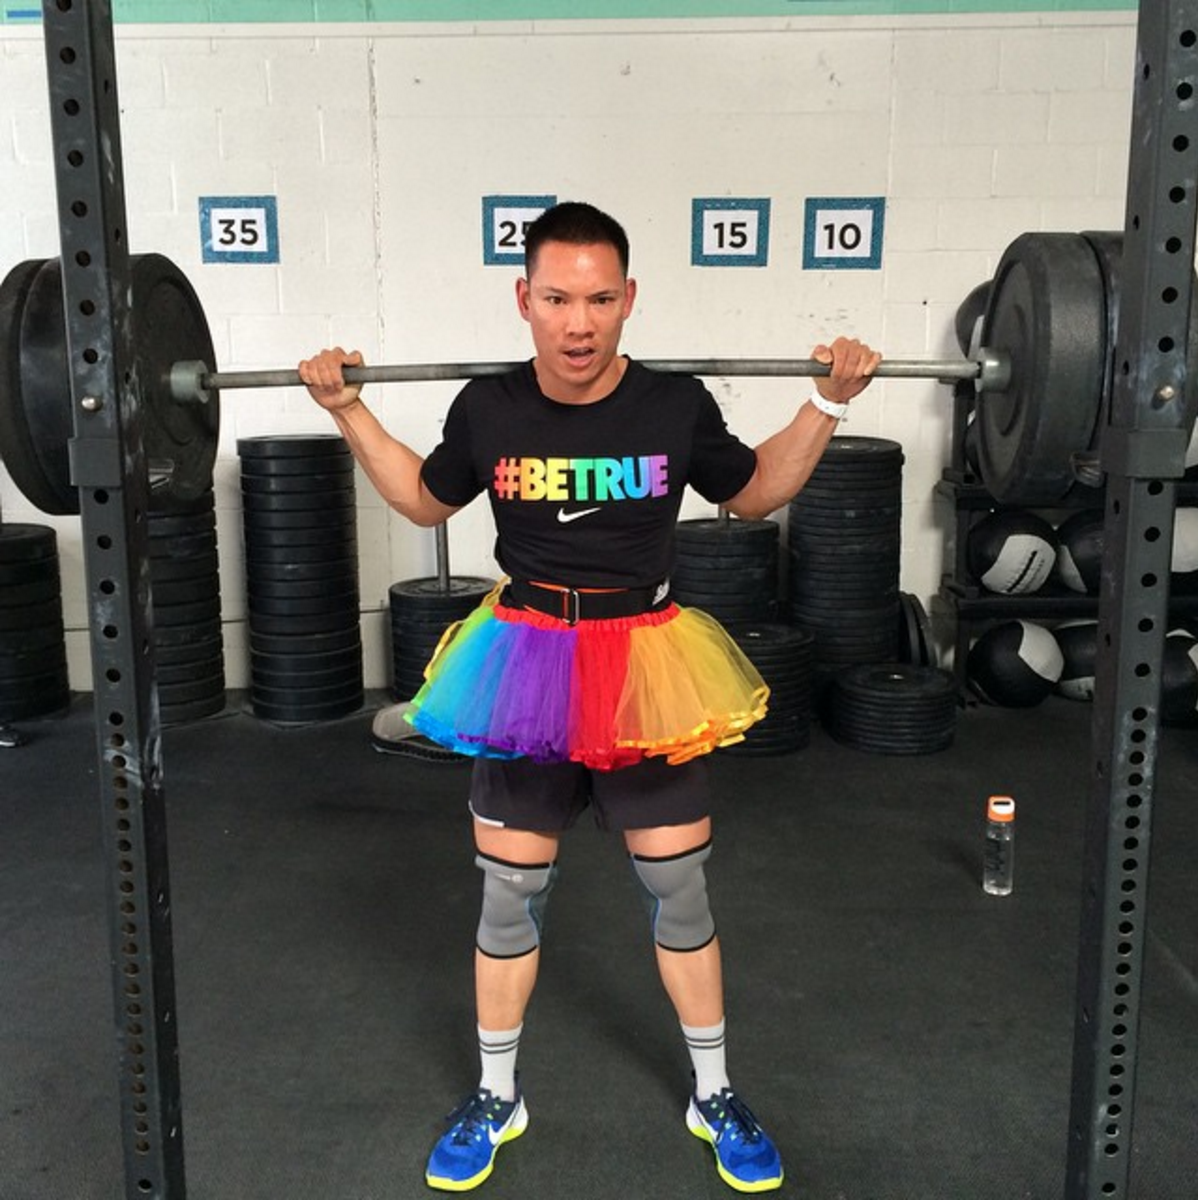 COACH IN TRAINING Jason L DEMONSTRATING THE PROPER SETUP FOR RAINBOW SQUATS